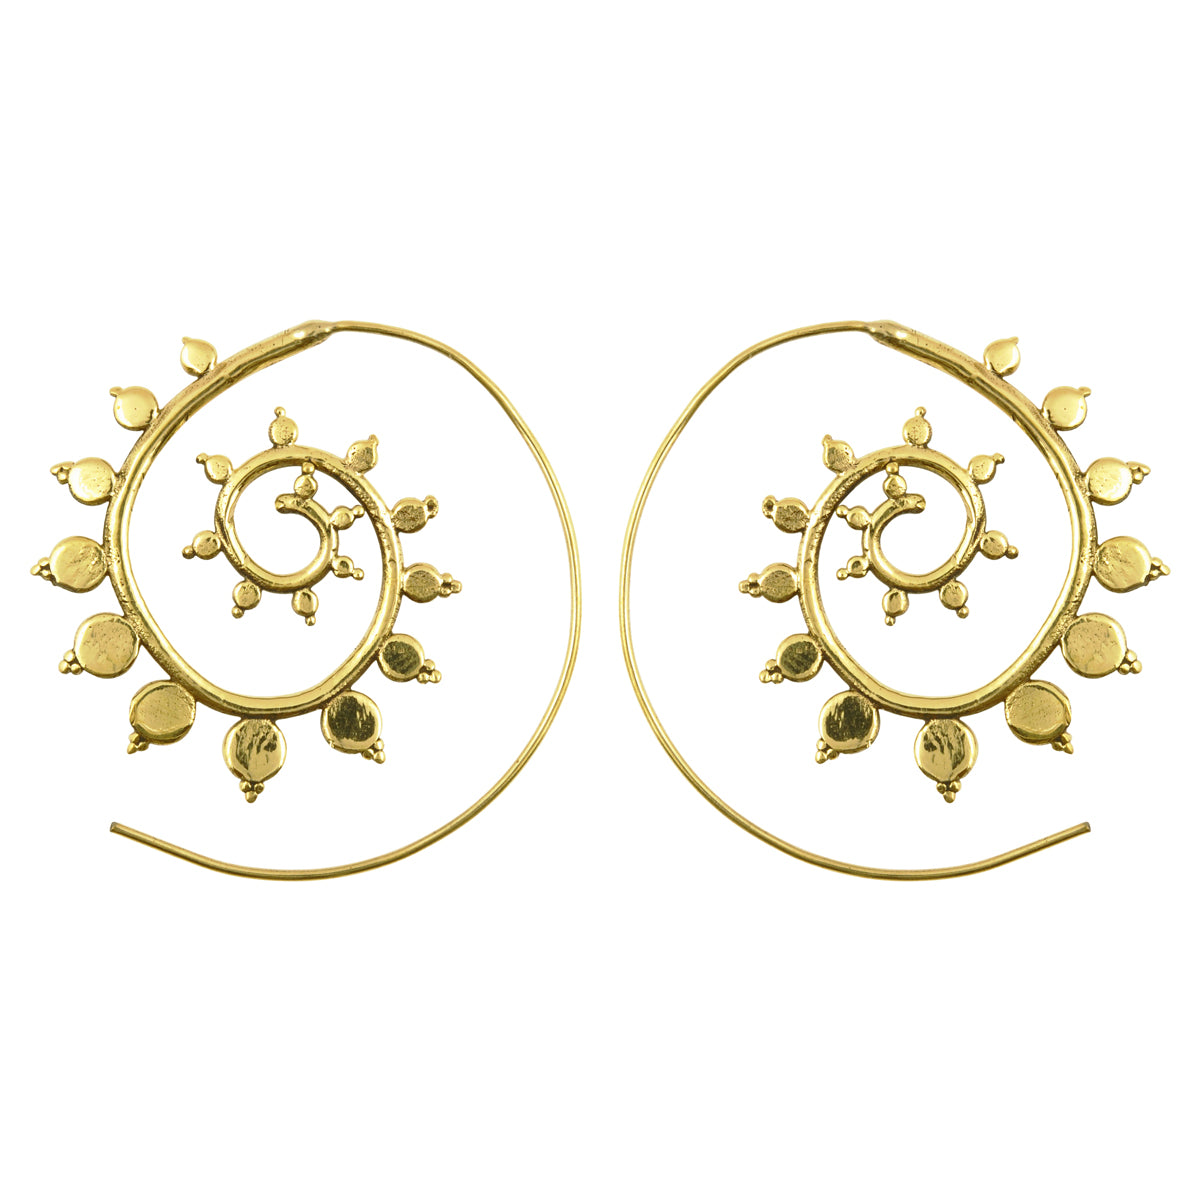 Simple-Brass Cordate Spiral Earrings-Gold-One Pair Camilla Blue